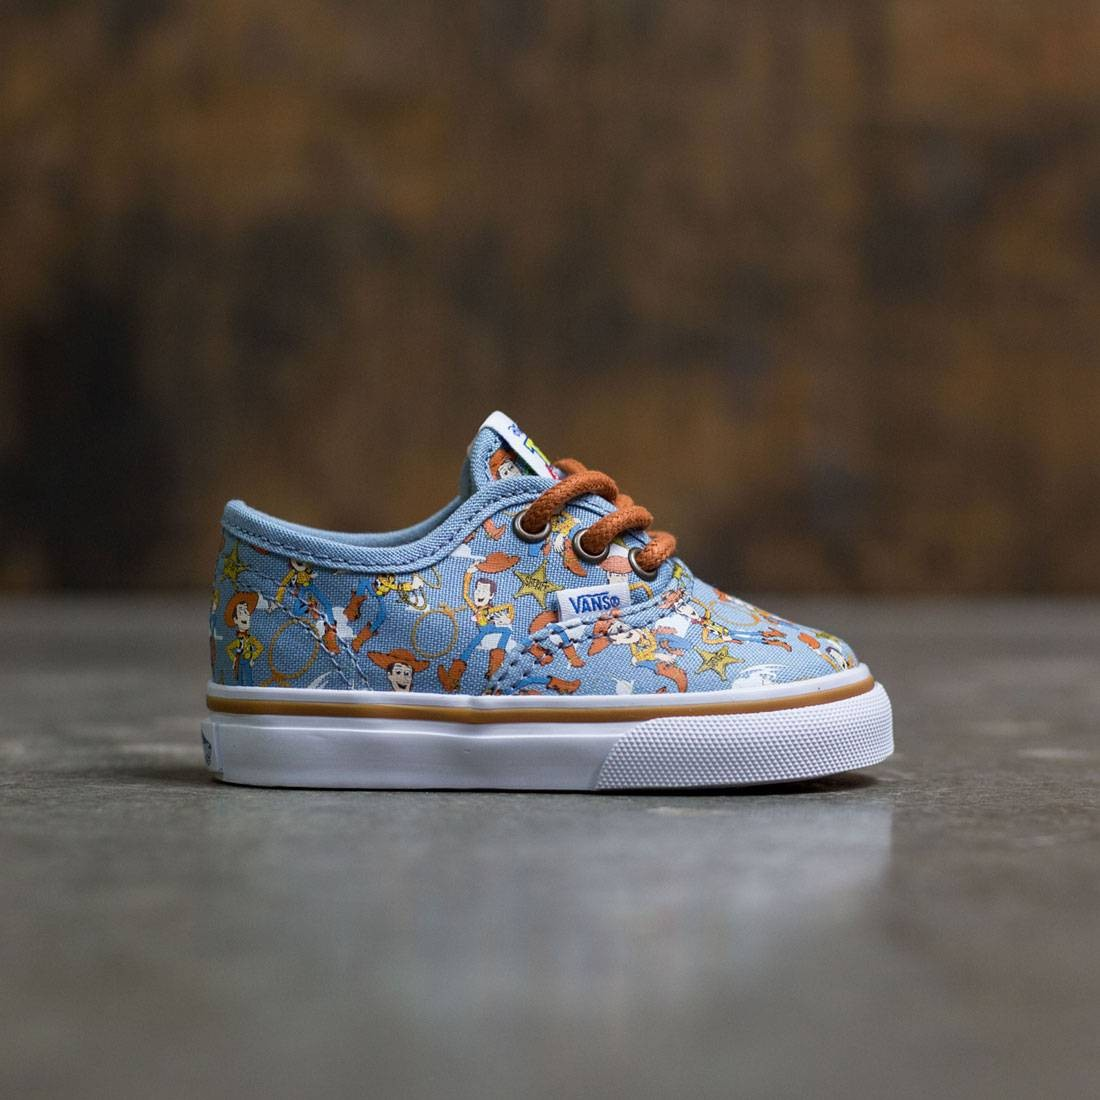 Vans x Disney Pixar Toy Story Toddlers Authentic - Woody (brown / white)